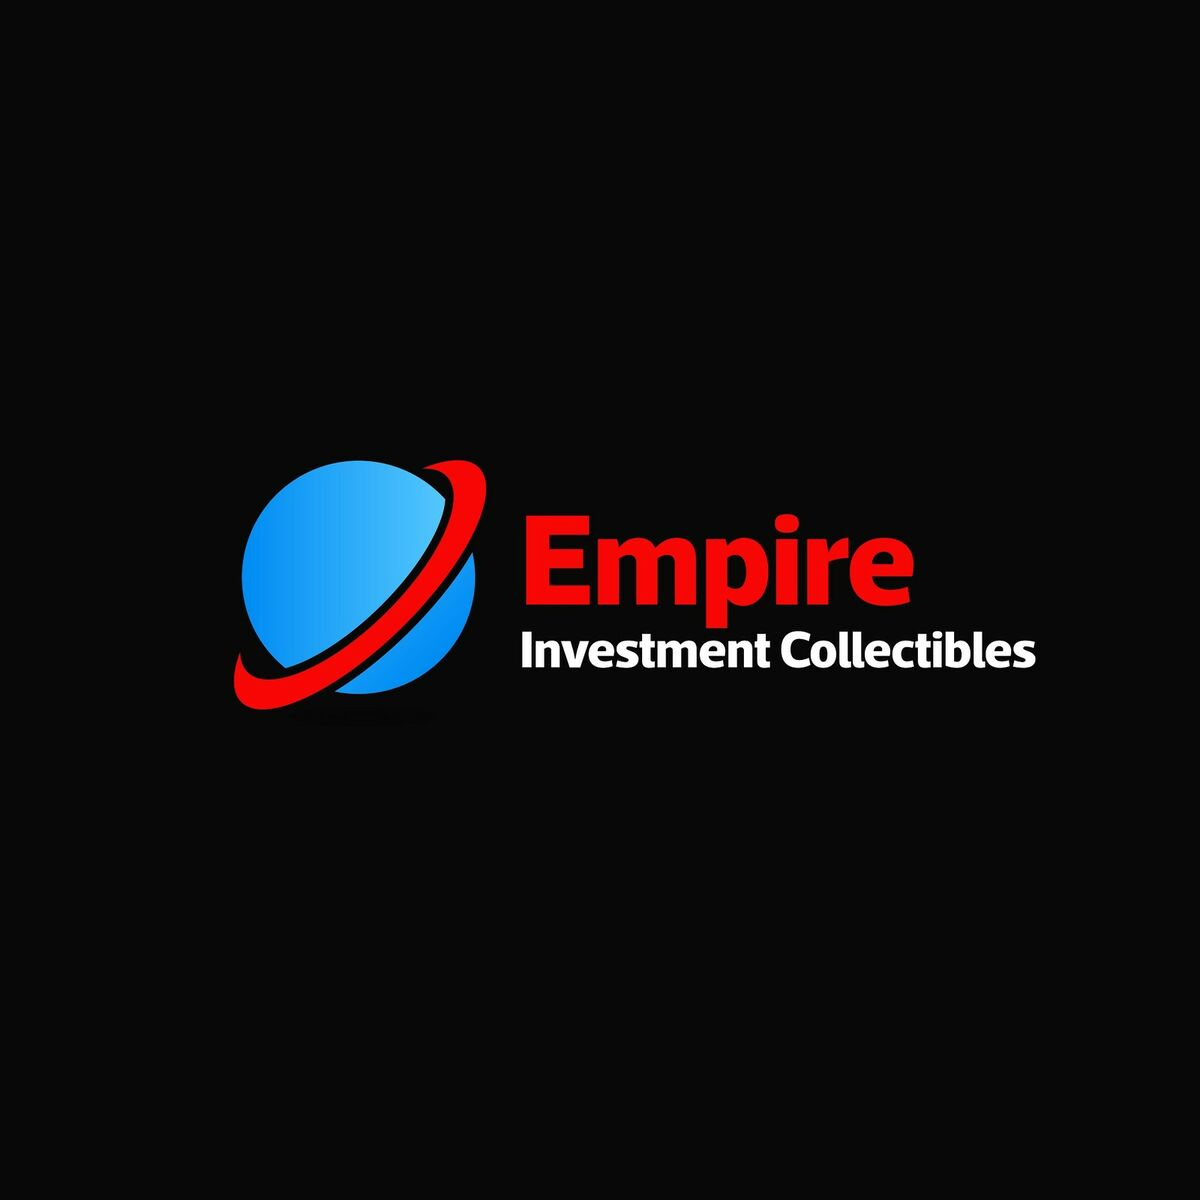 Empire Investment Collectibles